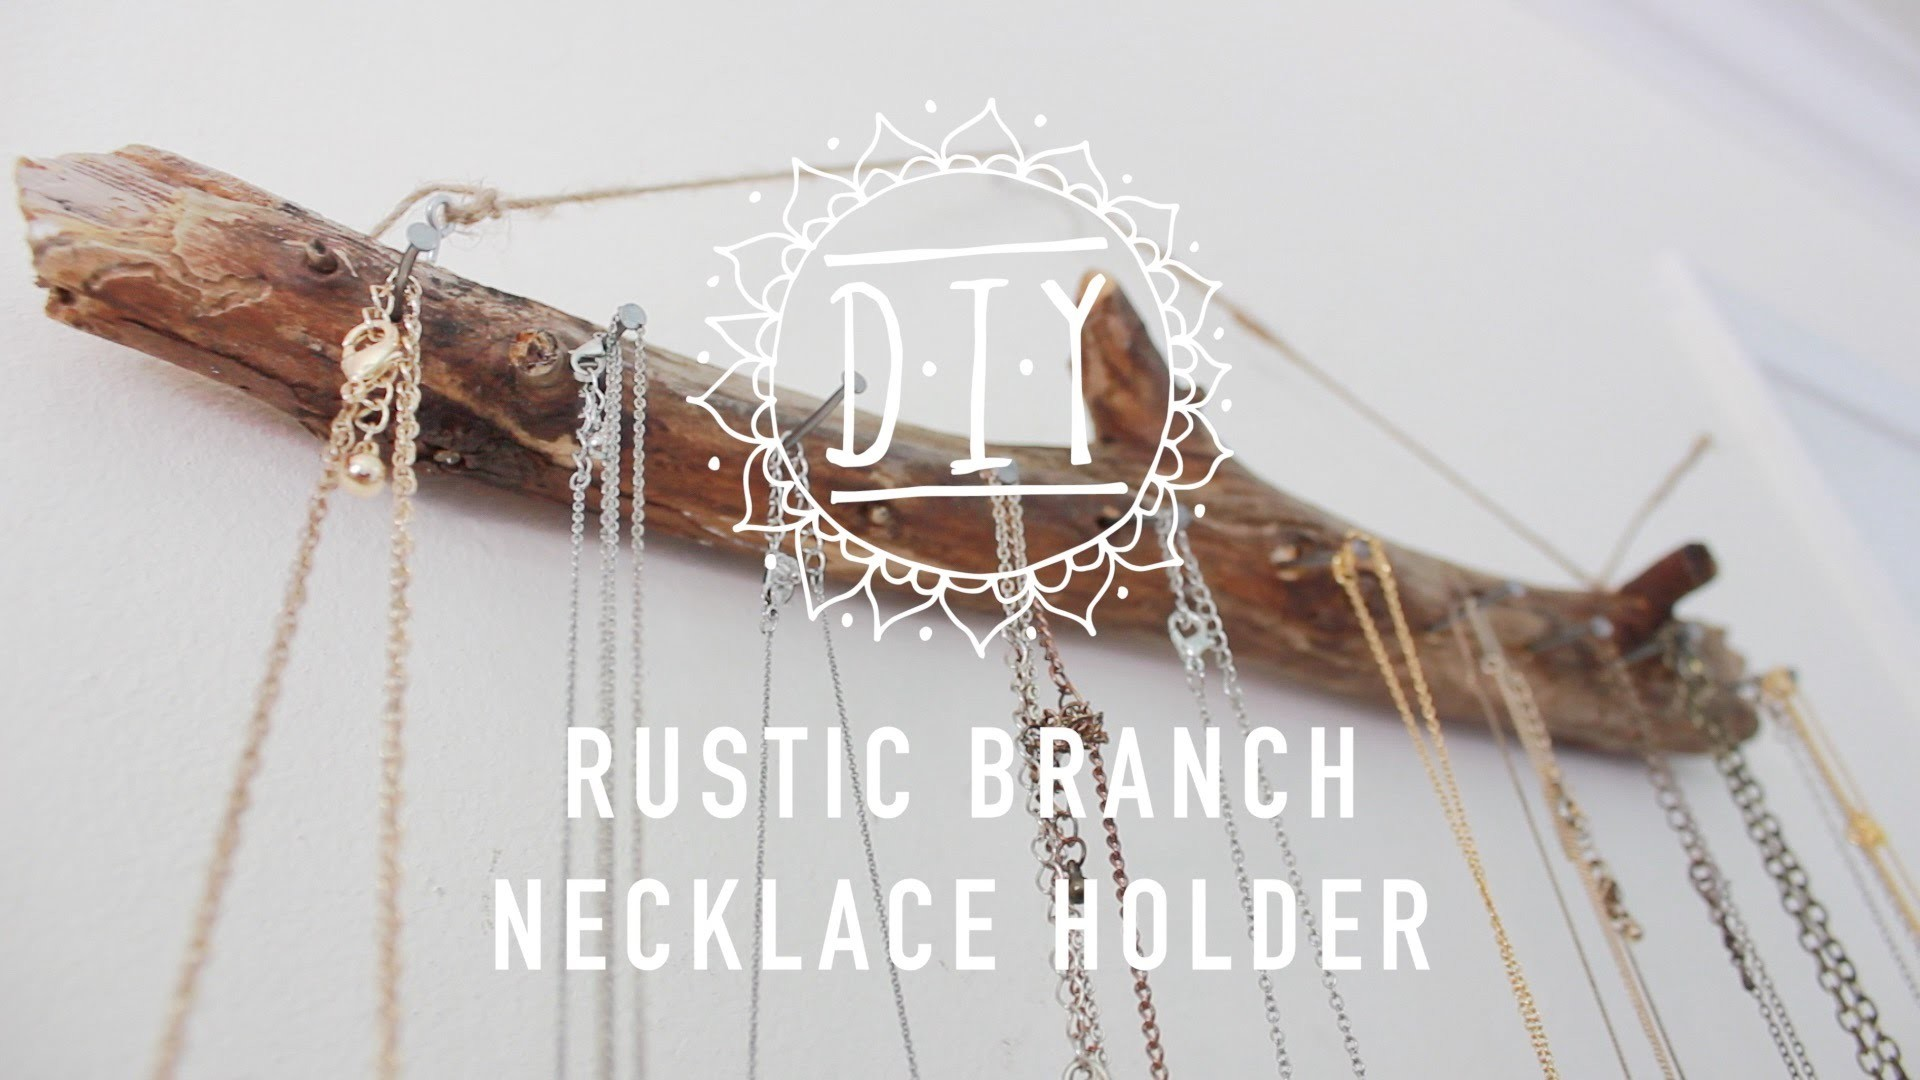 Rustic Branch Necklace Holder Tutorial